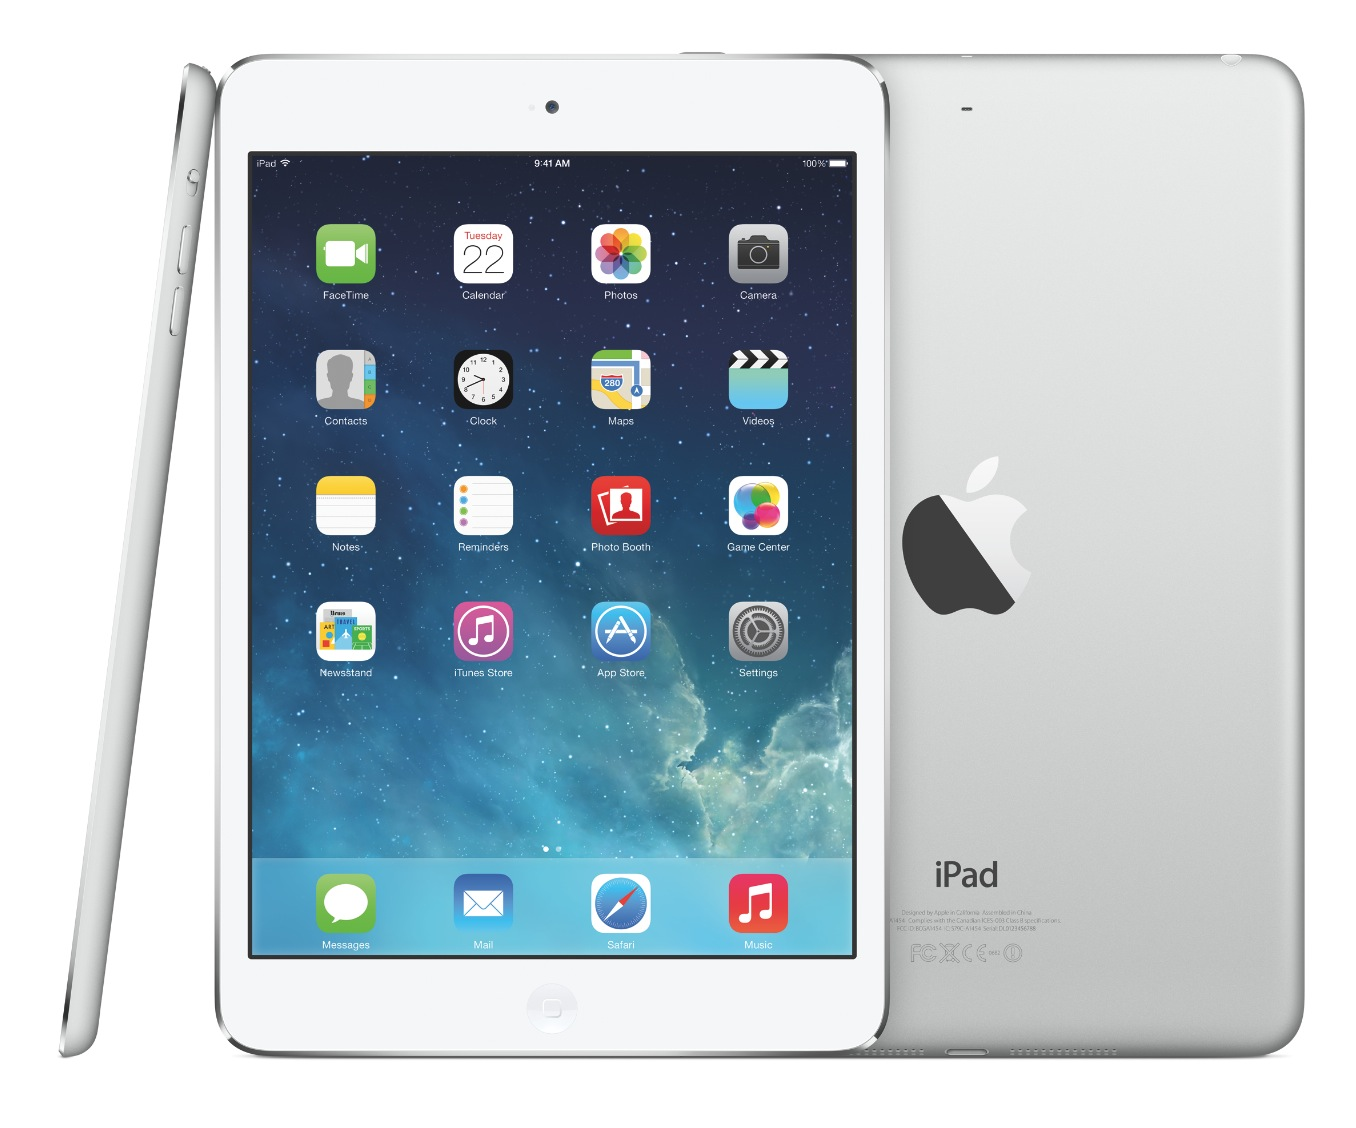 $ 100 discount on the Air iPad until September 4th